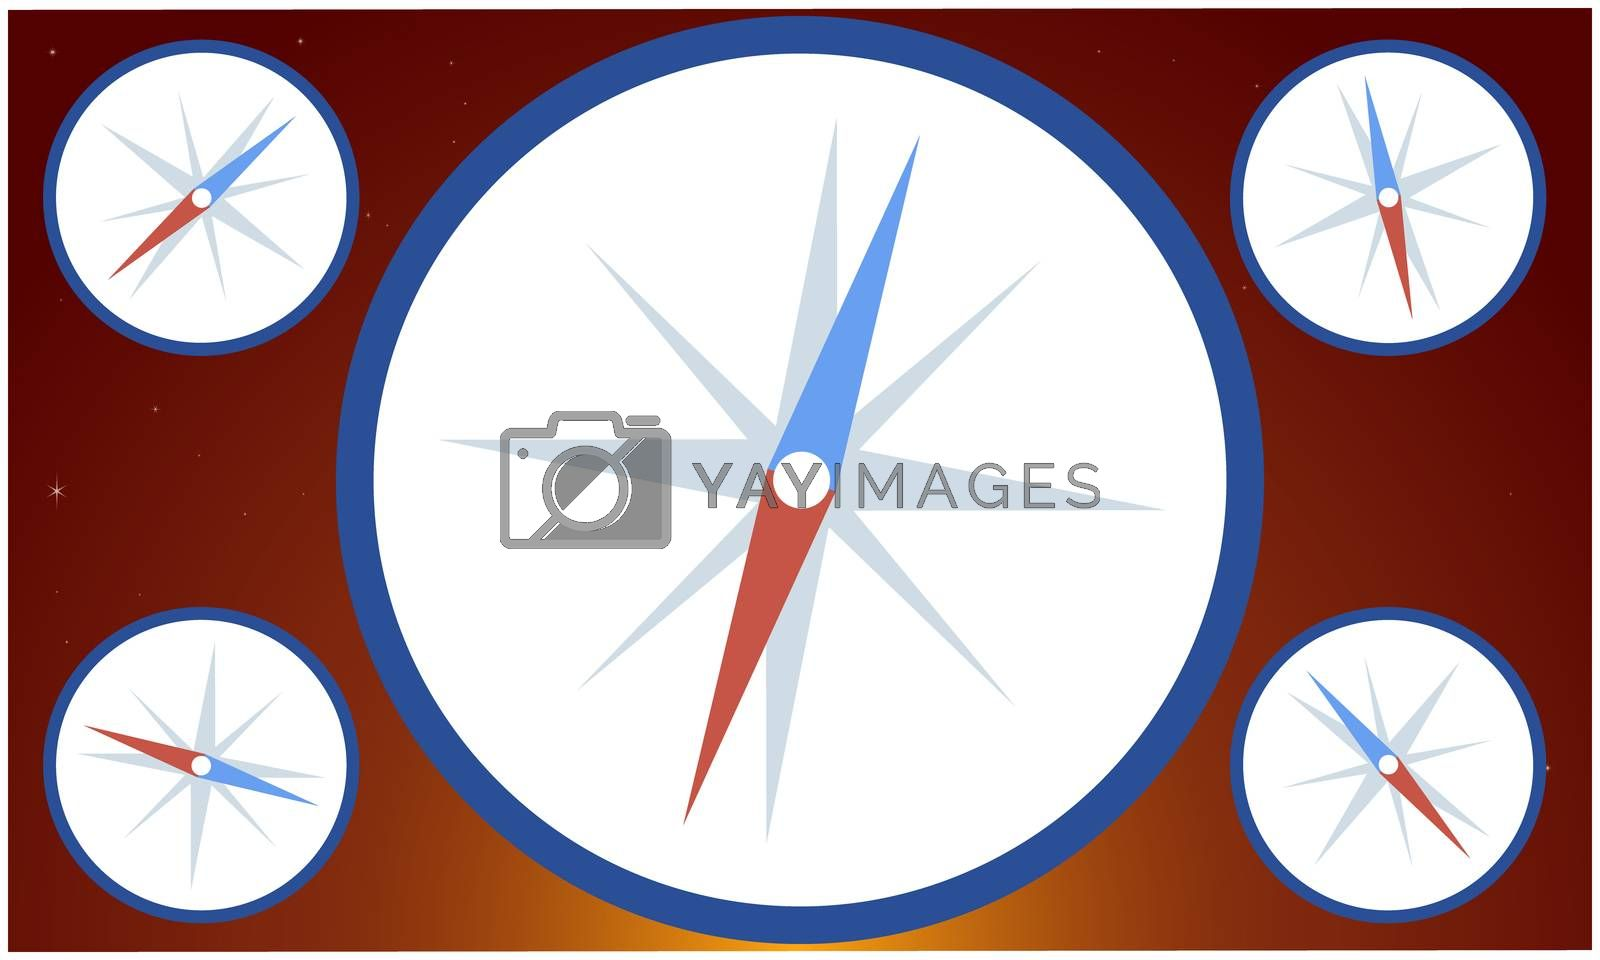 digital textile design of compass on abstract backgrounds